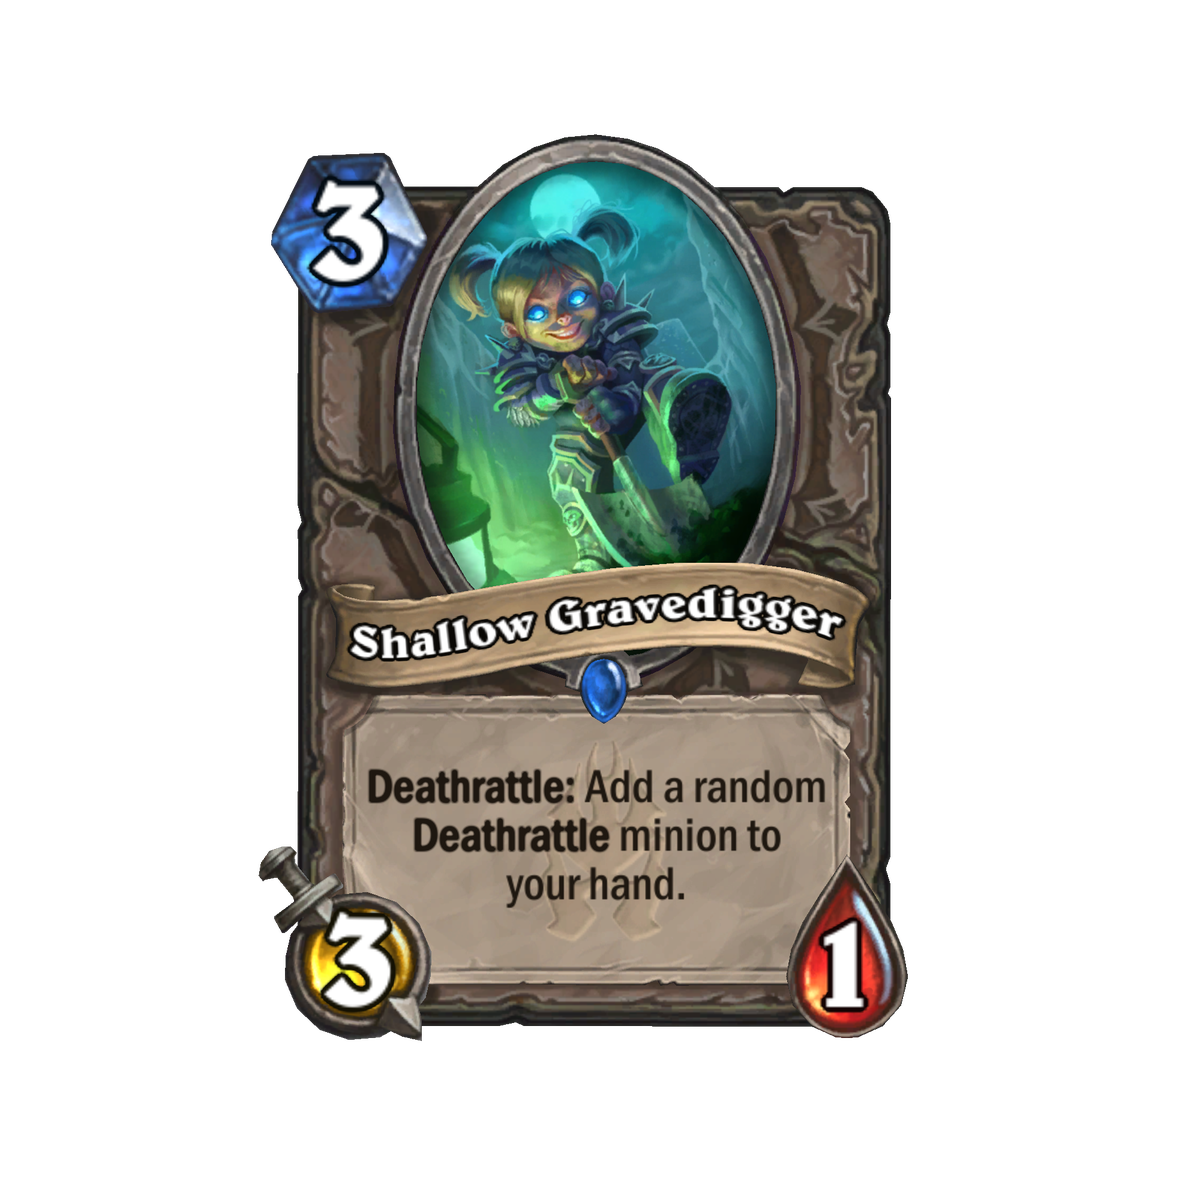 """This Hearthstone card is titled """"Shallow Gravedigger."""" It is a three-cost minion with three attack and one health, and its card text reads: """"Deathrattle: Add a random Deathrattle minion to your hand."""" The card art depicts an armored gnome pushing a shovel"""